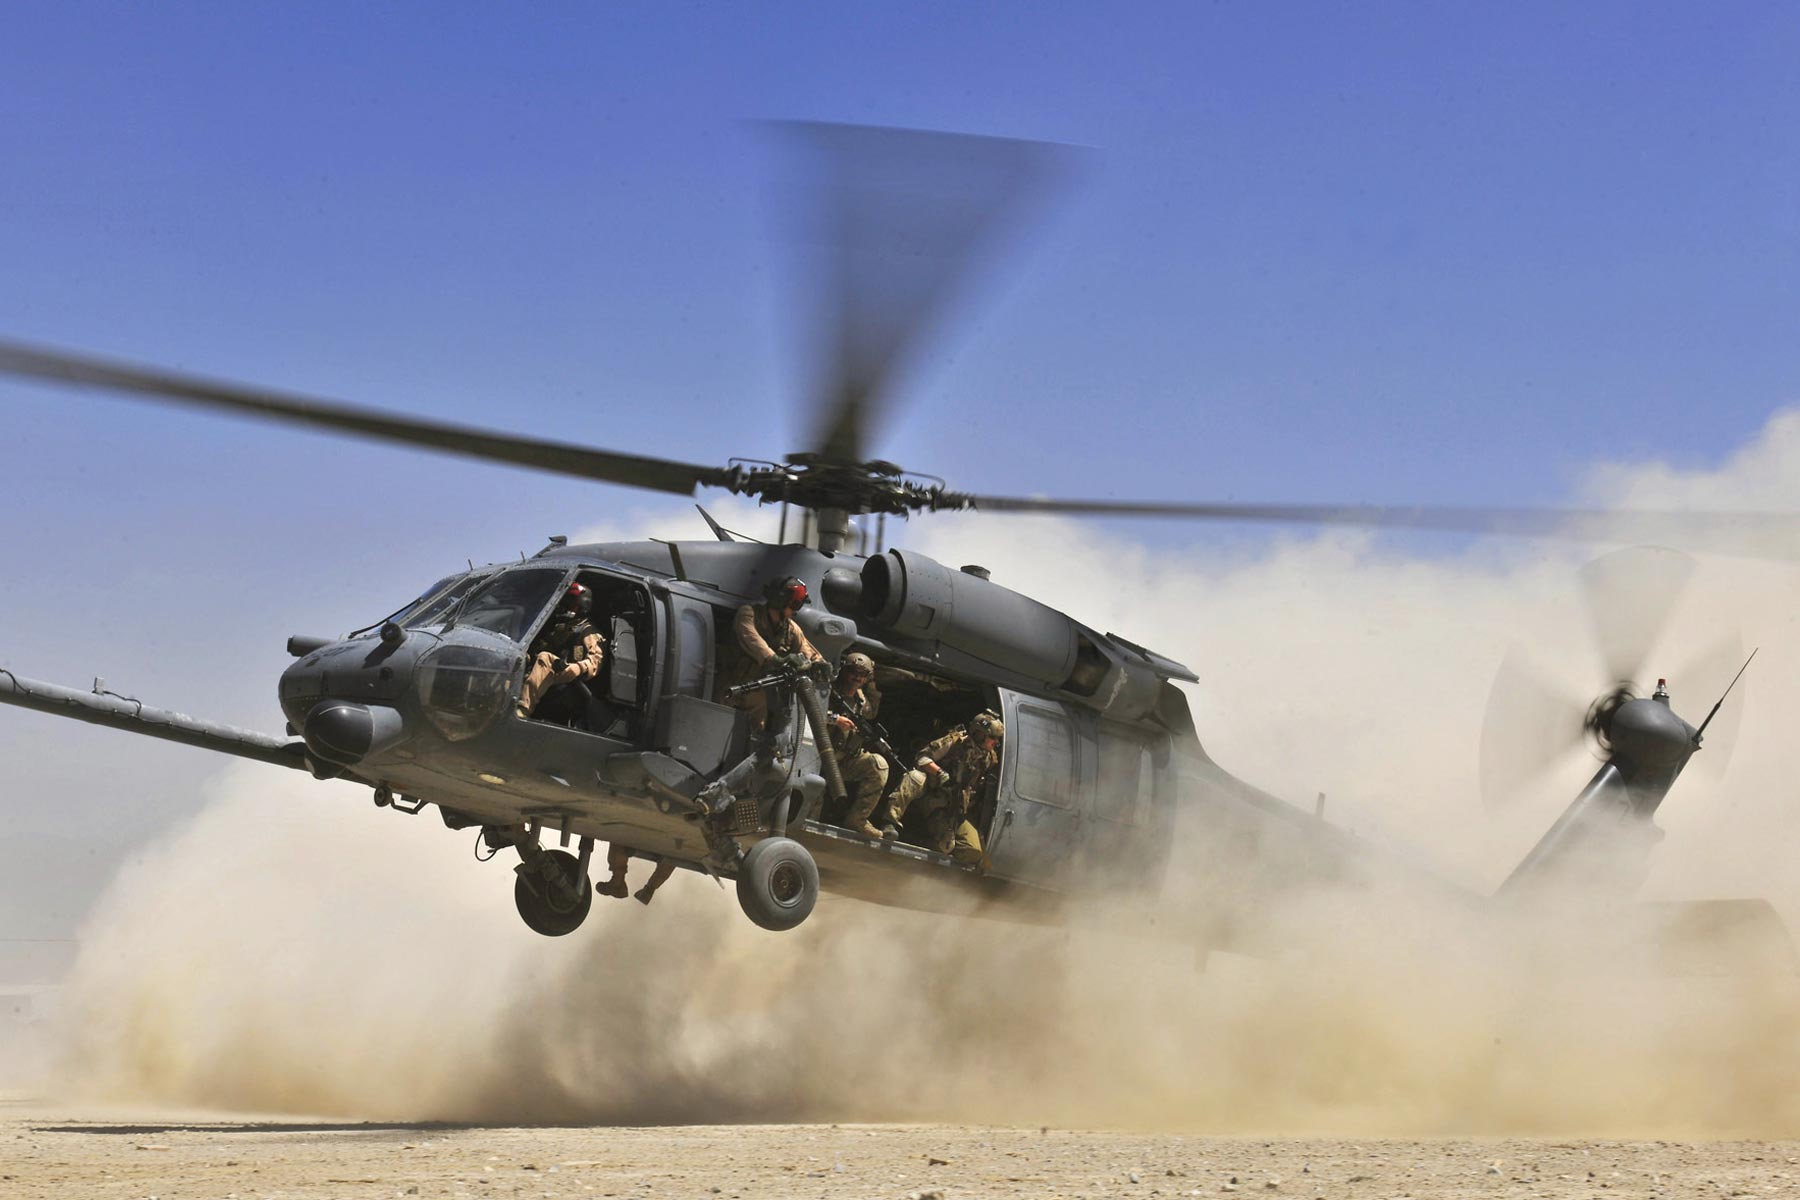 Pave Hawk Replacement Can't Come Too Soon as Maintenance Mounts: GAO